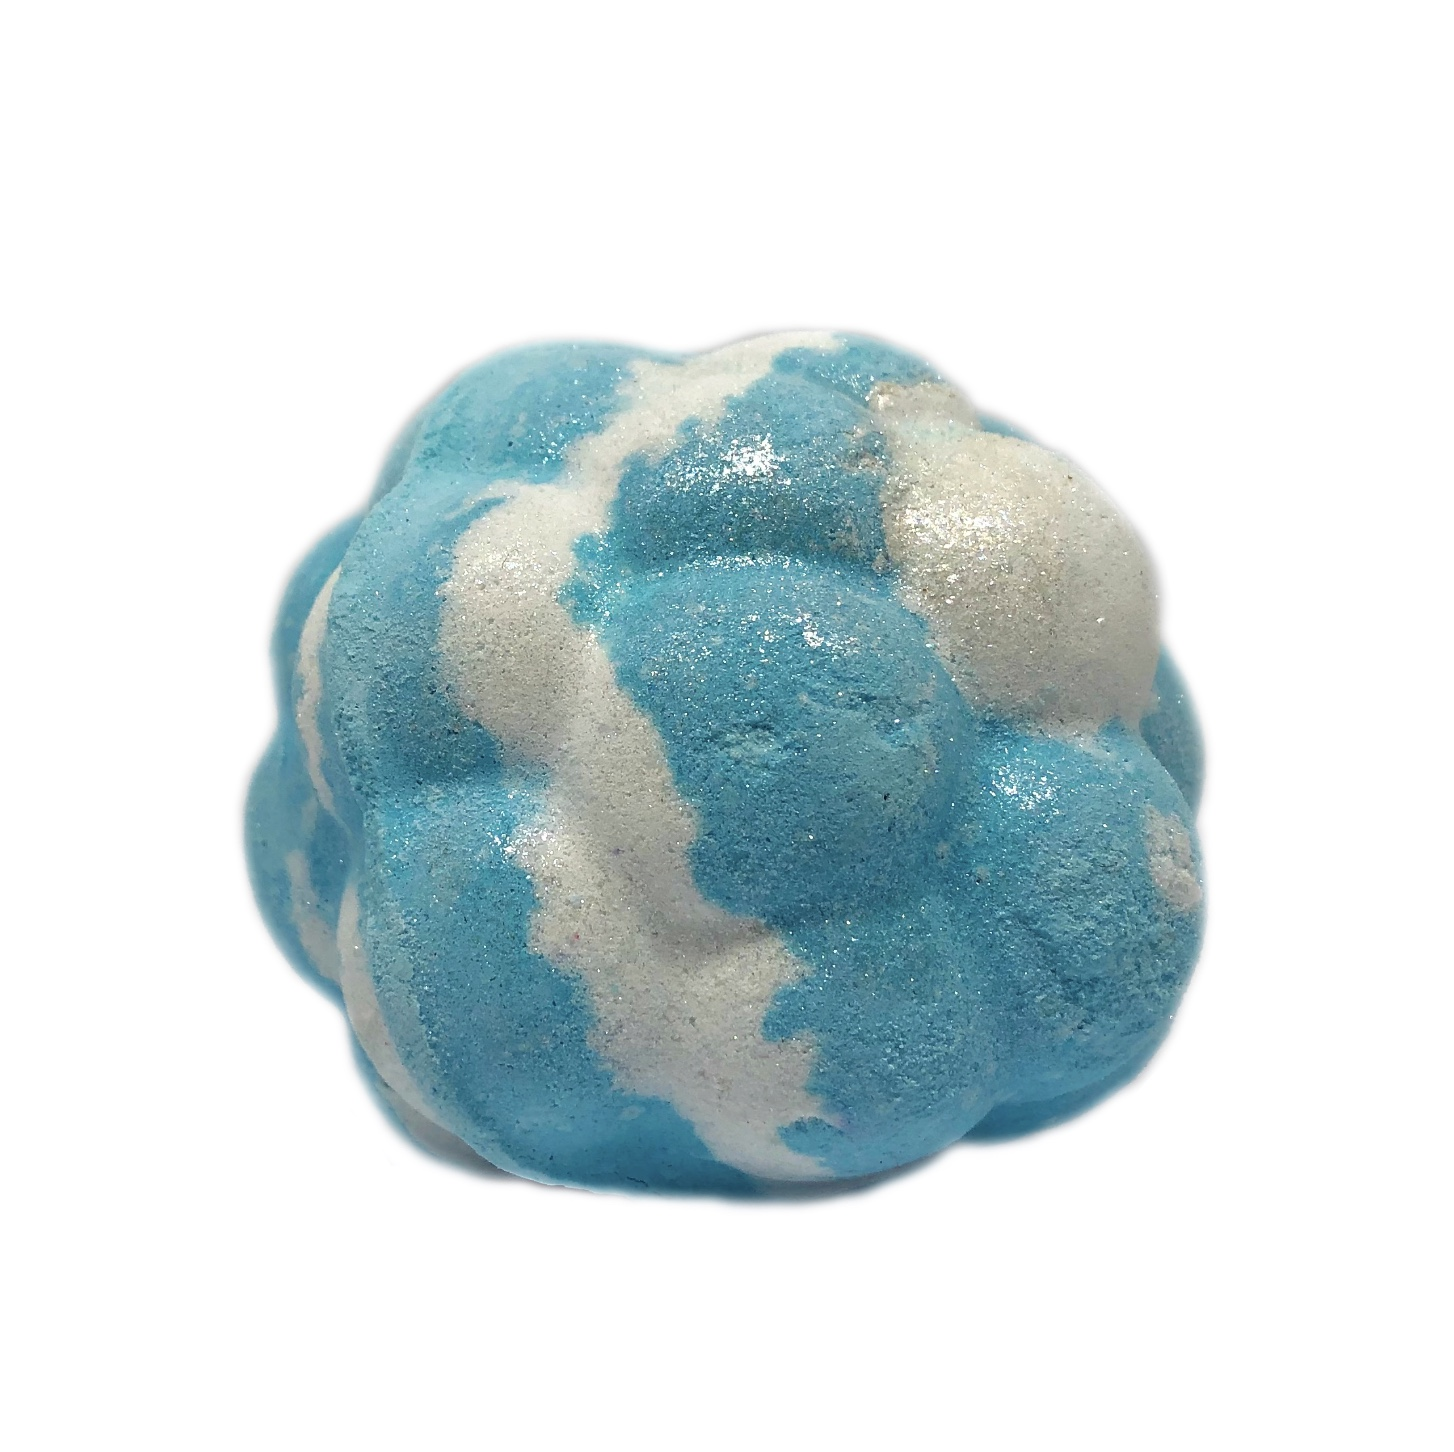 Blue Skies and Fluffy White Clouds Bath Bomb